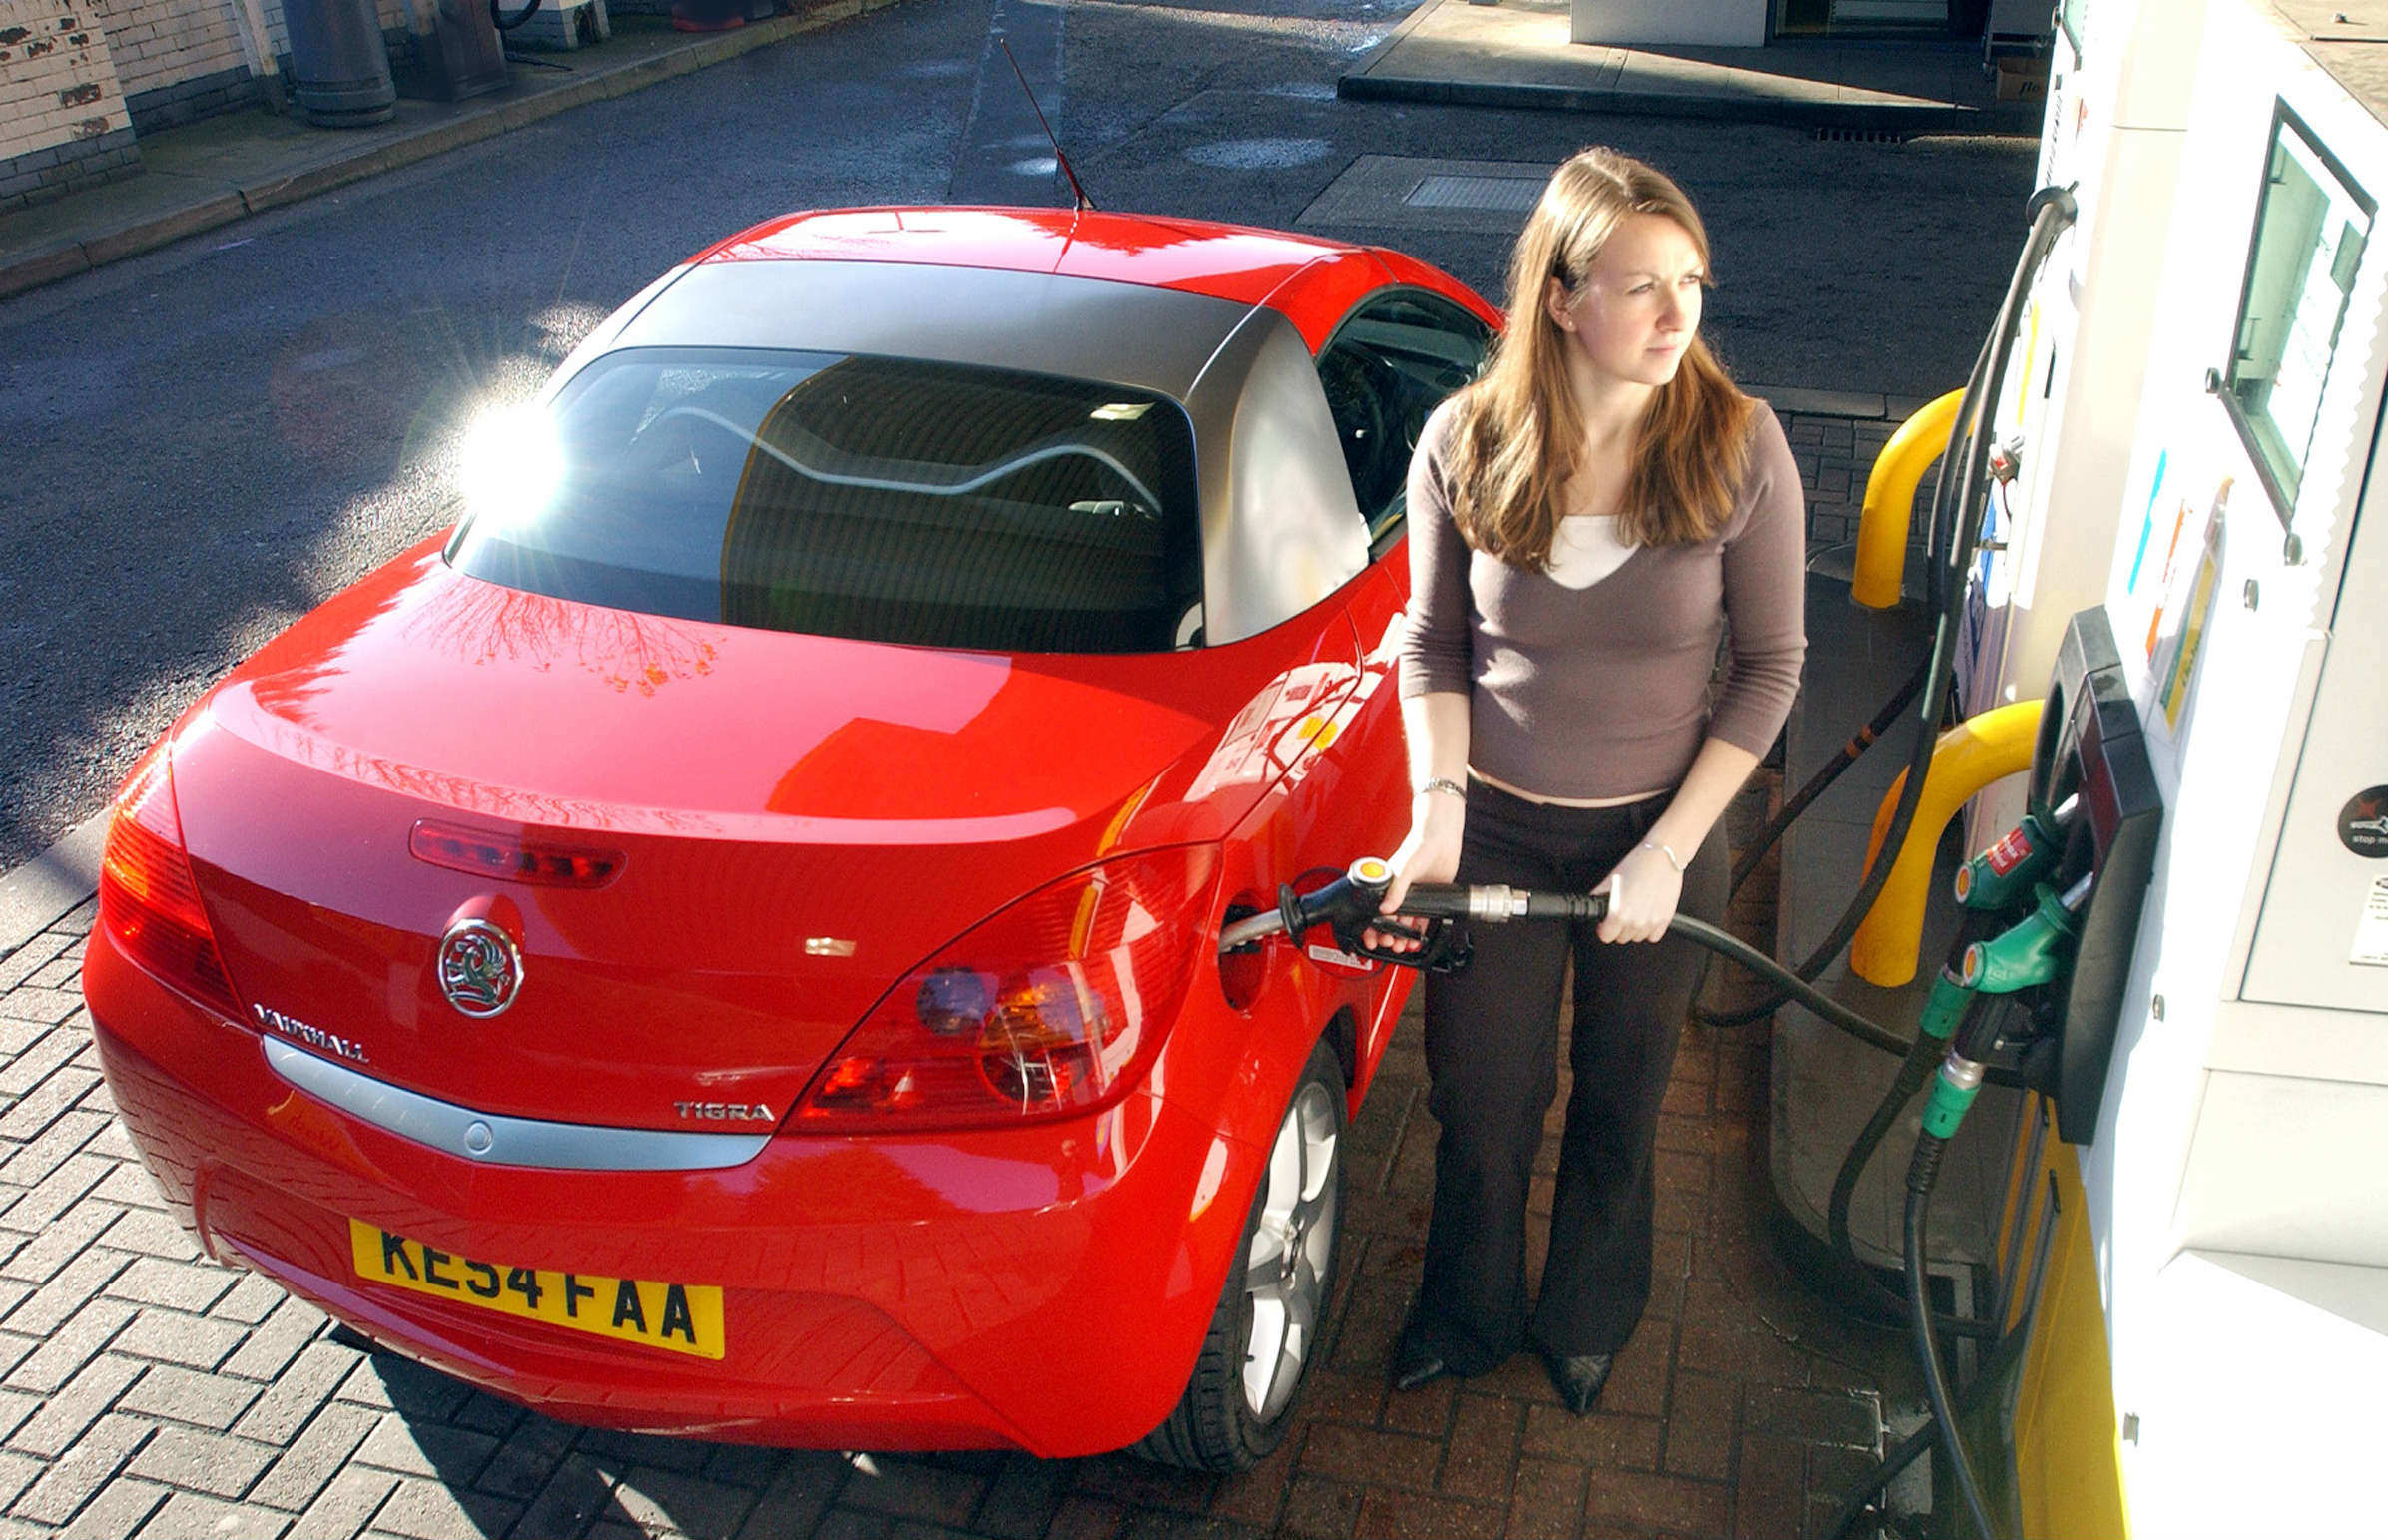 image of a person filling up their car at a petrol station